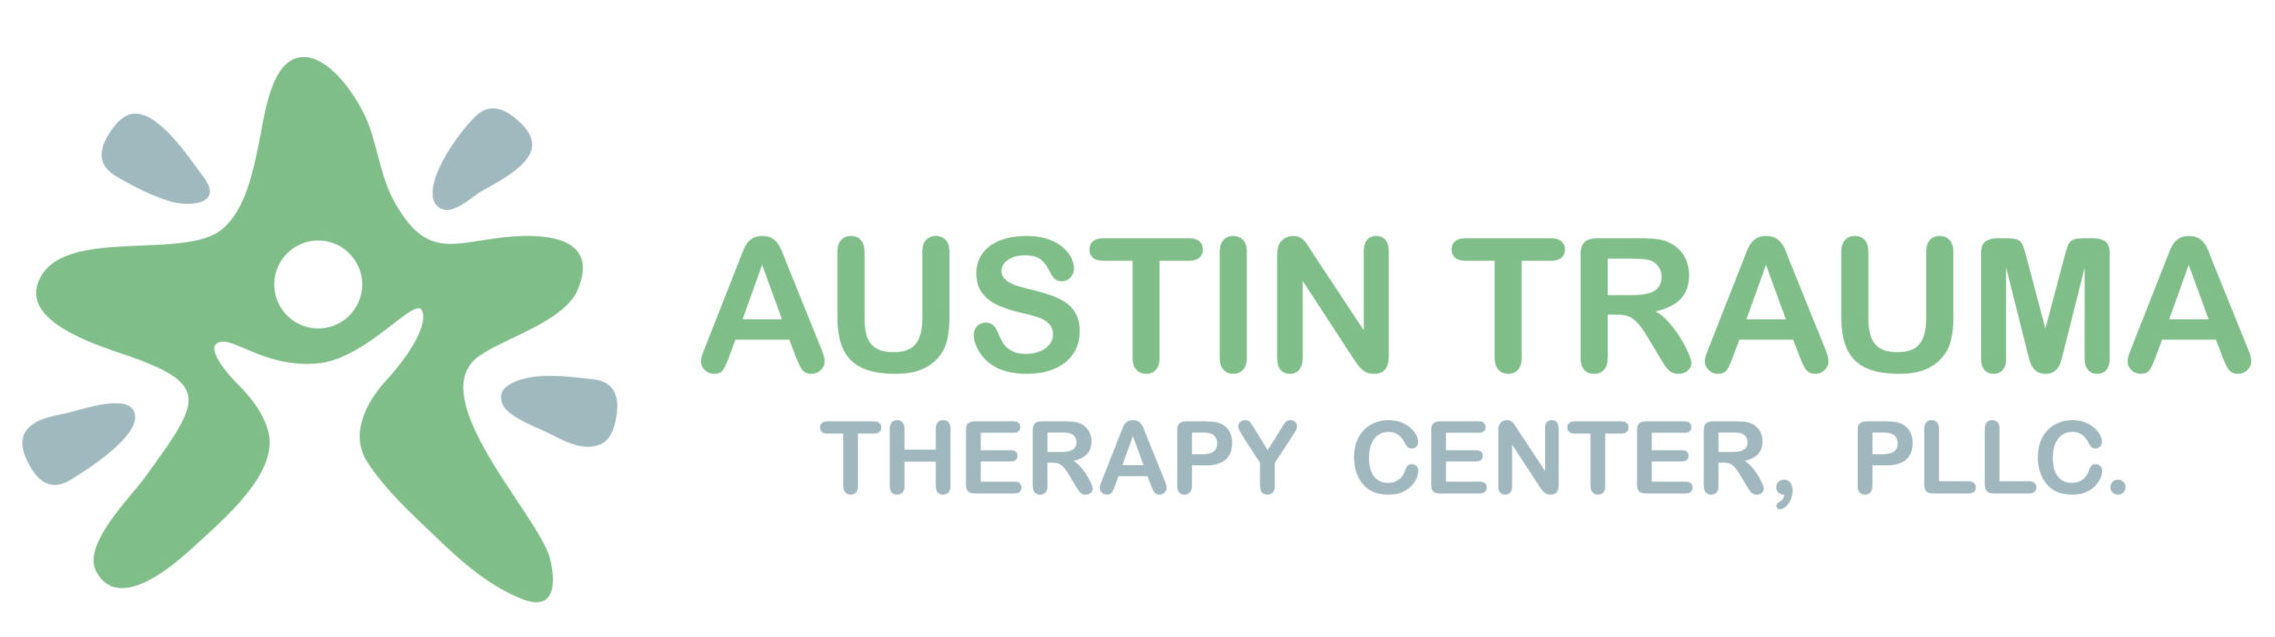 Therapist in Austin